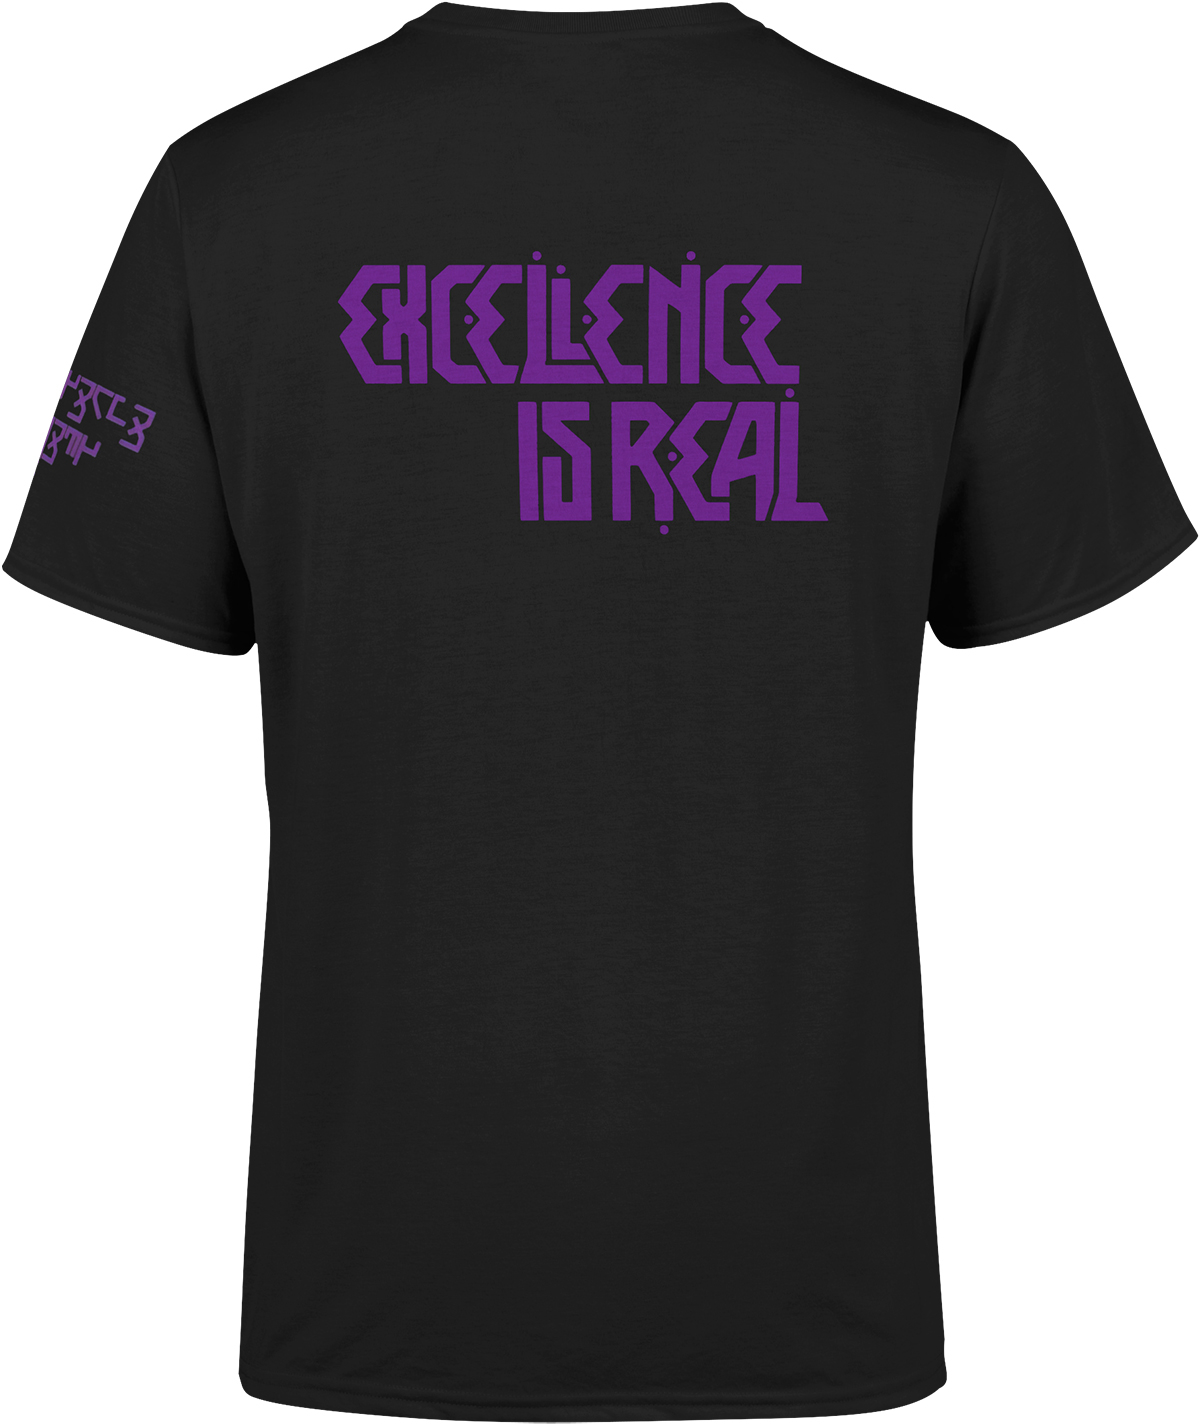 EXCELLENCE SPENCER T/S 2XL